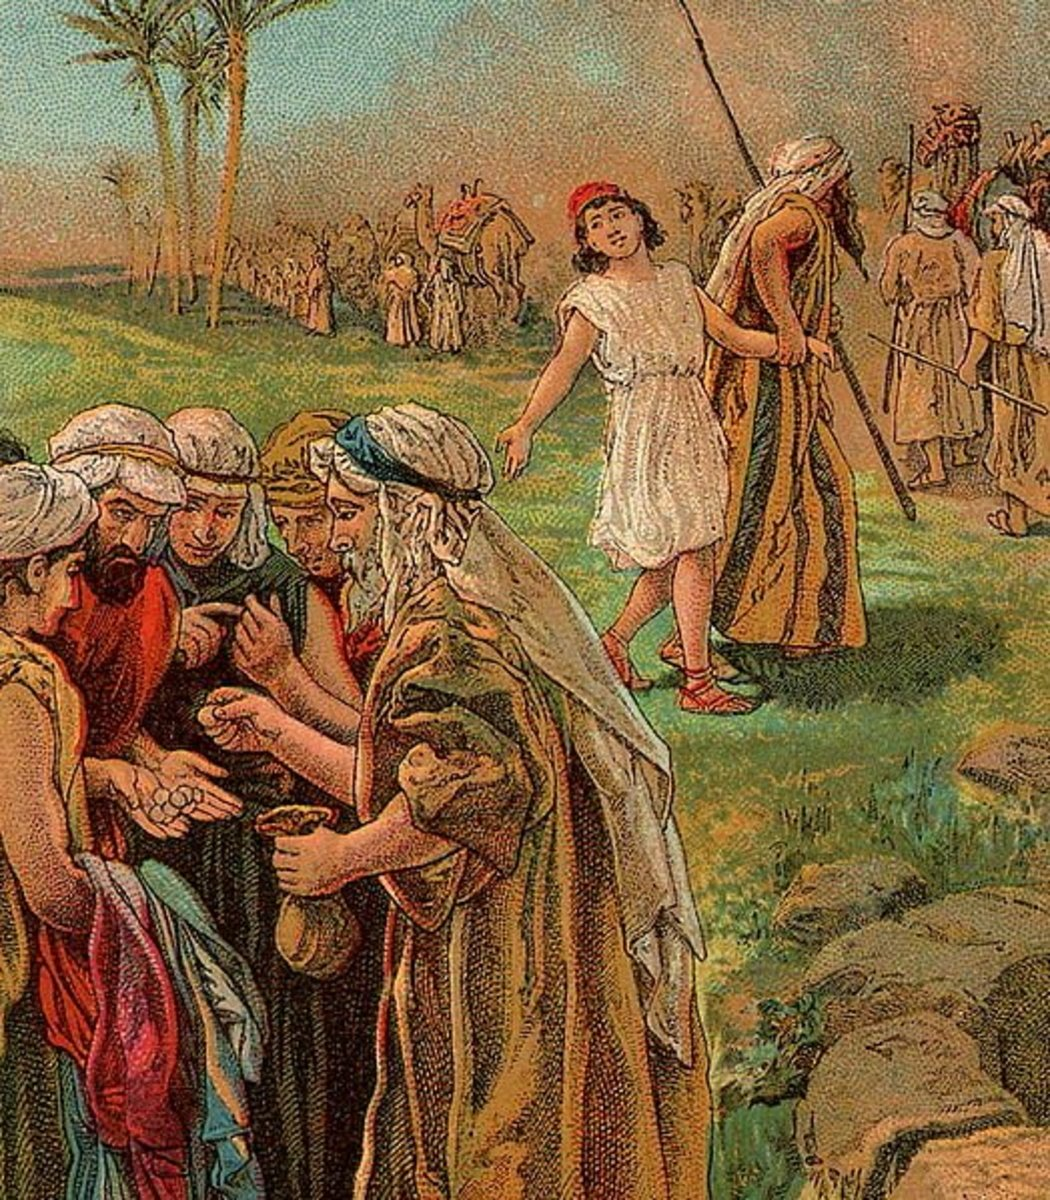 In the story of Joseph in the Bible, he is sold into slavery by his jealous brothers.